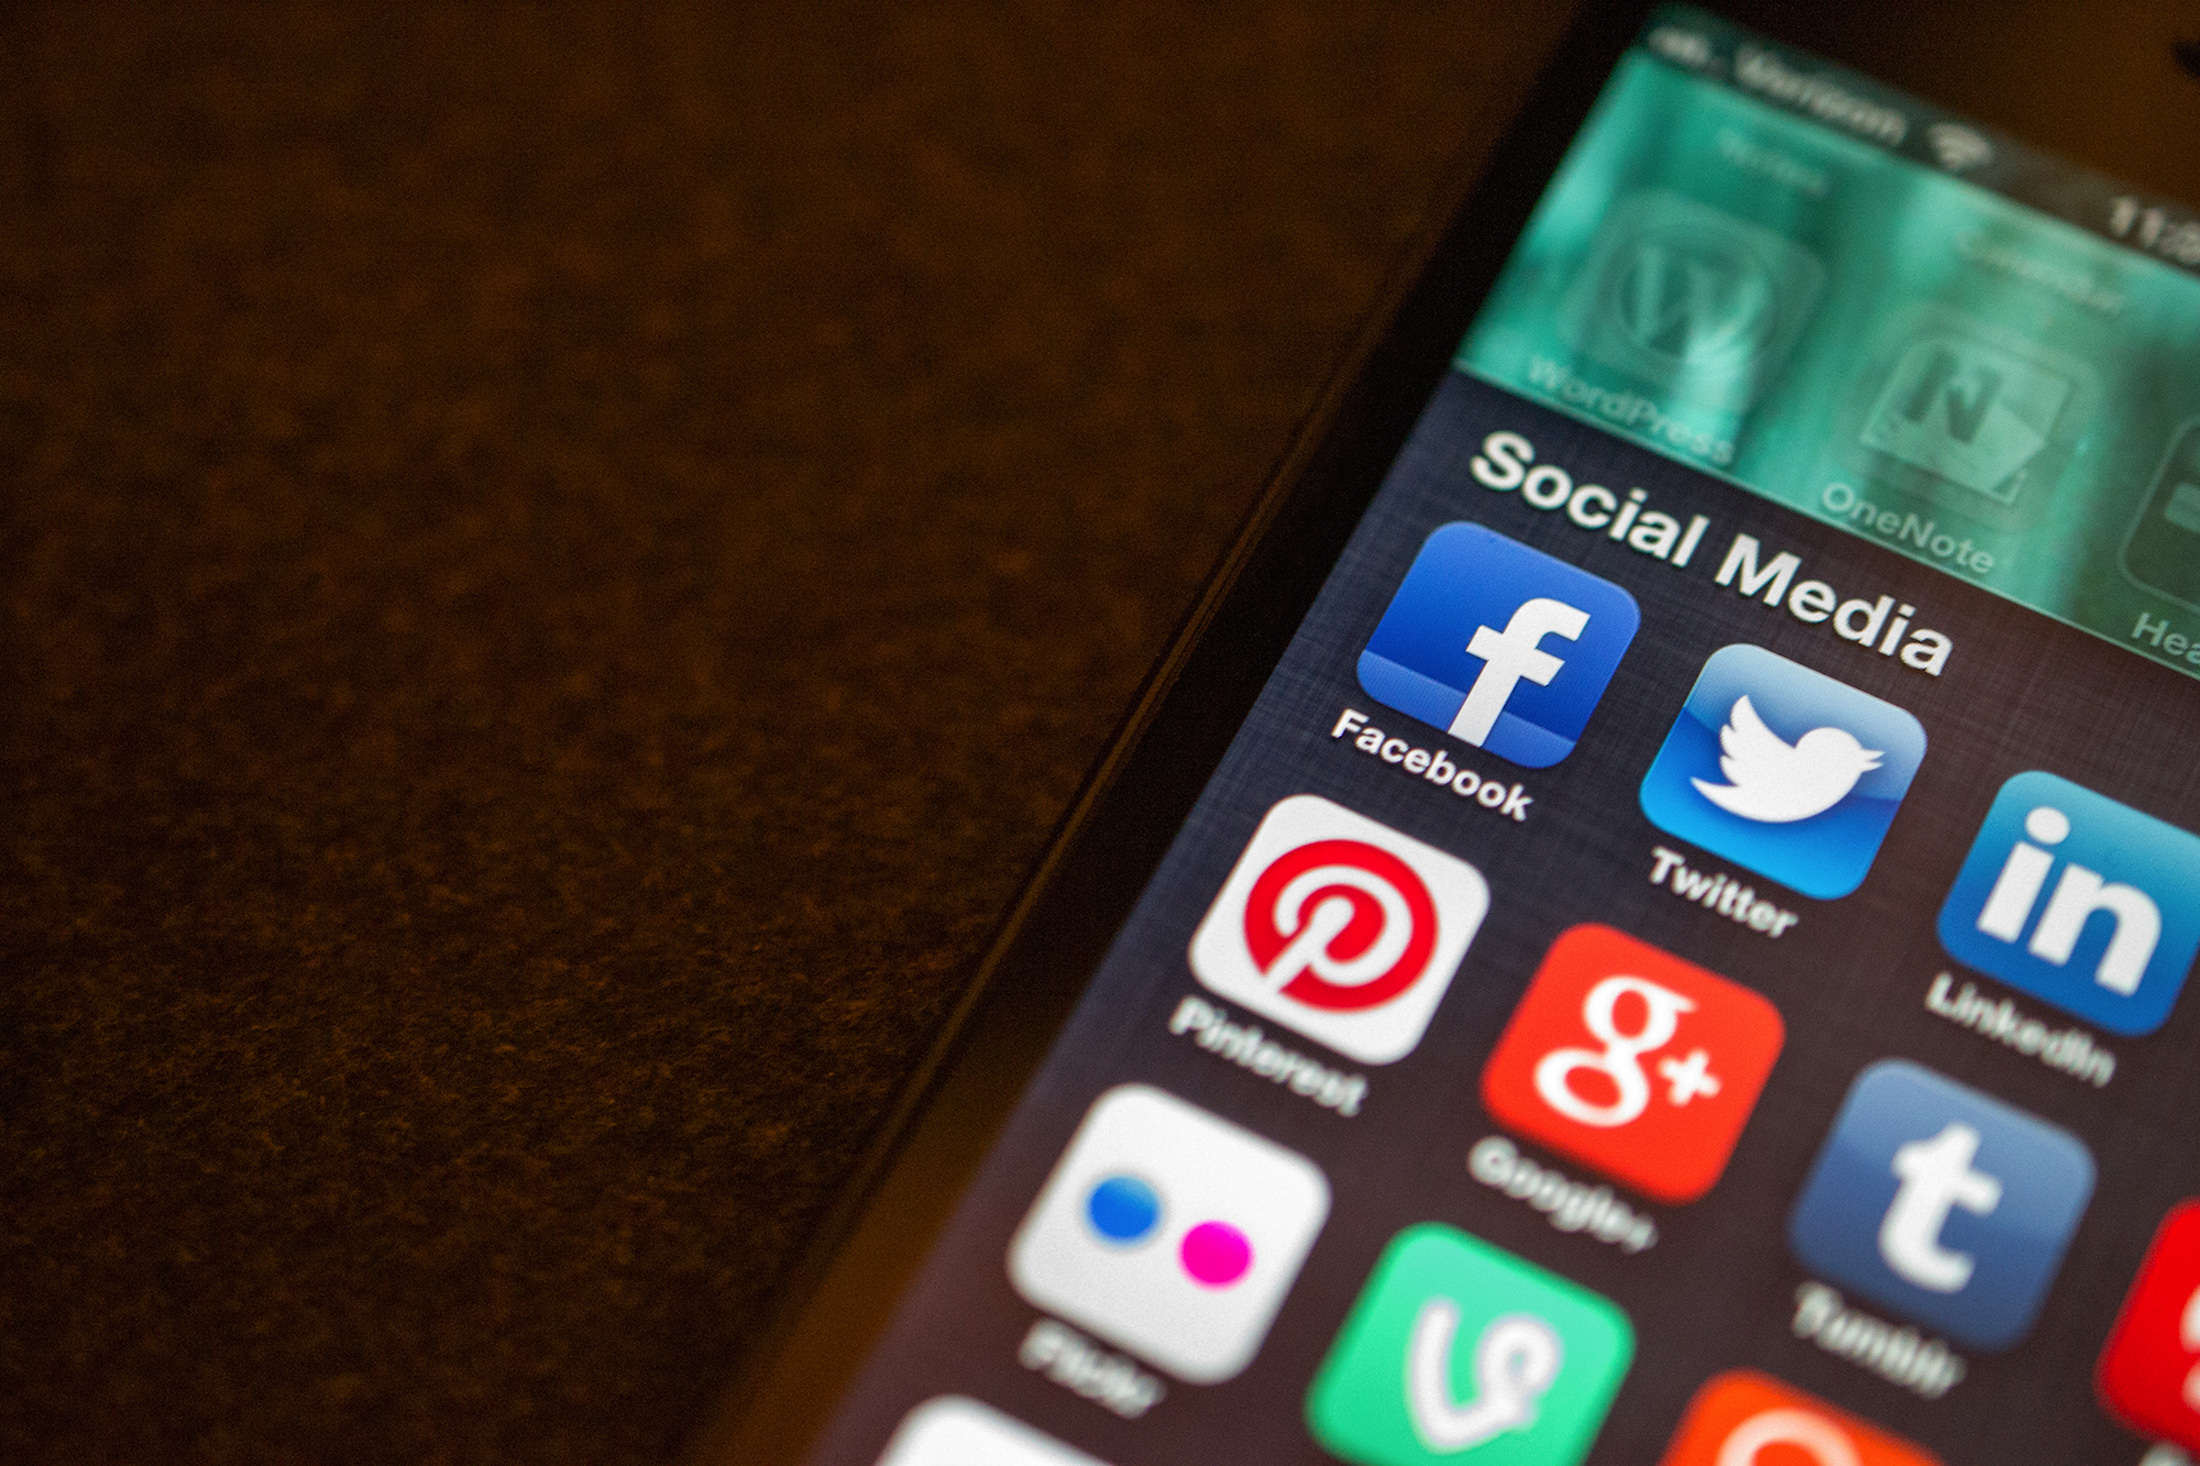 A few of the popular social media apps that have released statements saying that the FBI requesting information about certain users. (Jason Howie/Flickr Creative Commons)